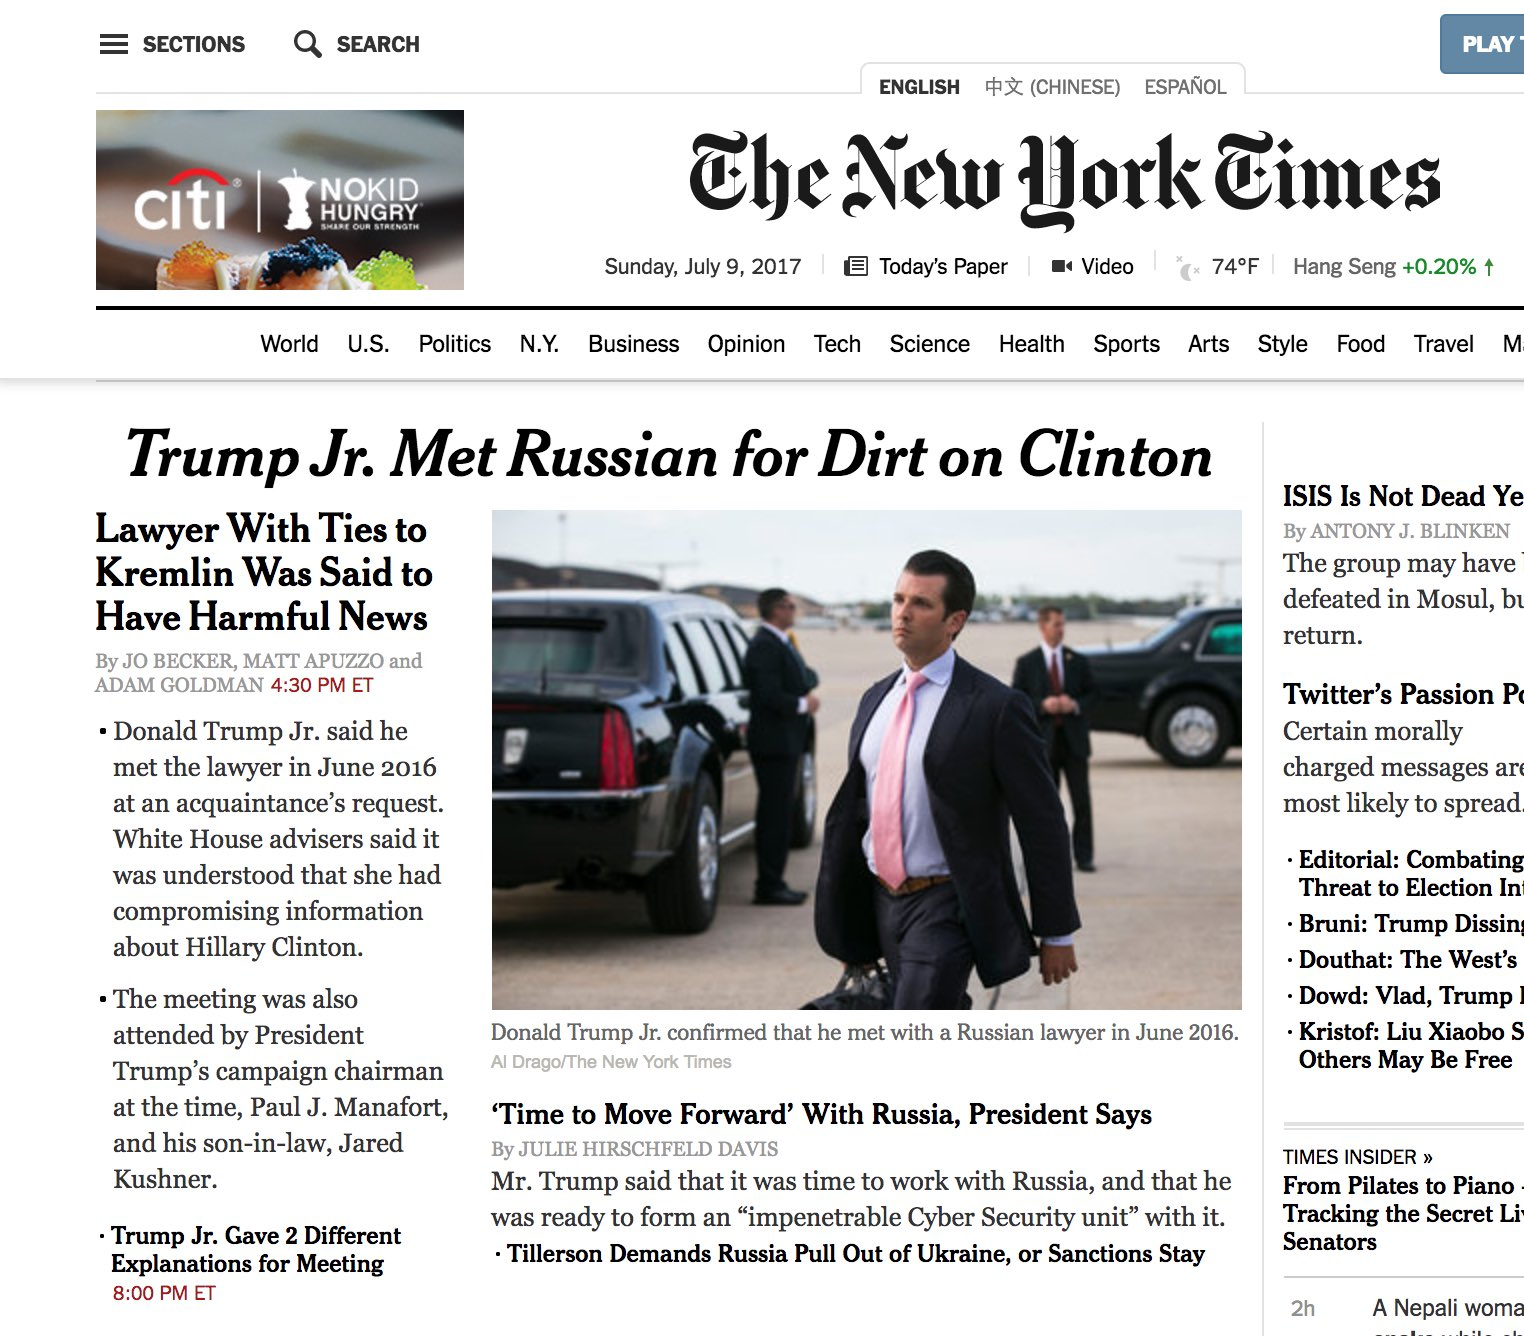 That's a helluva headline on the NYT homepage. And also note the story below it. https://t.co/axr3ZL7JWW